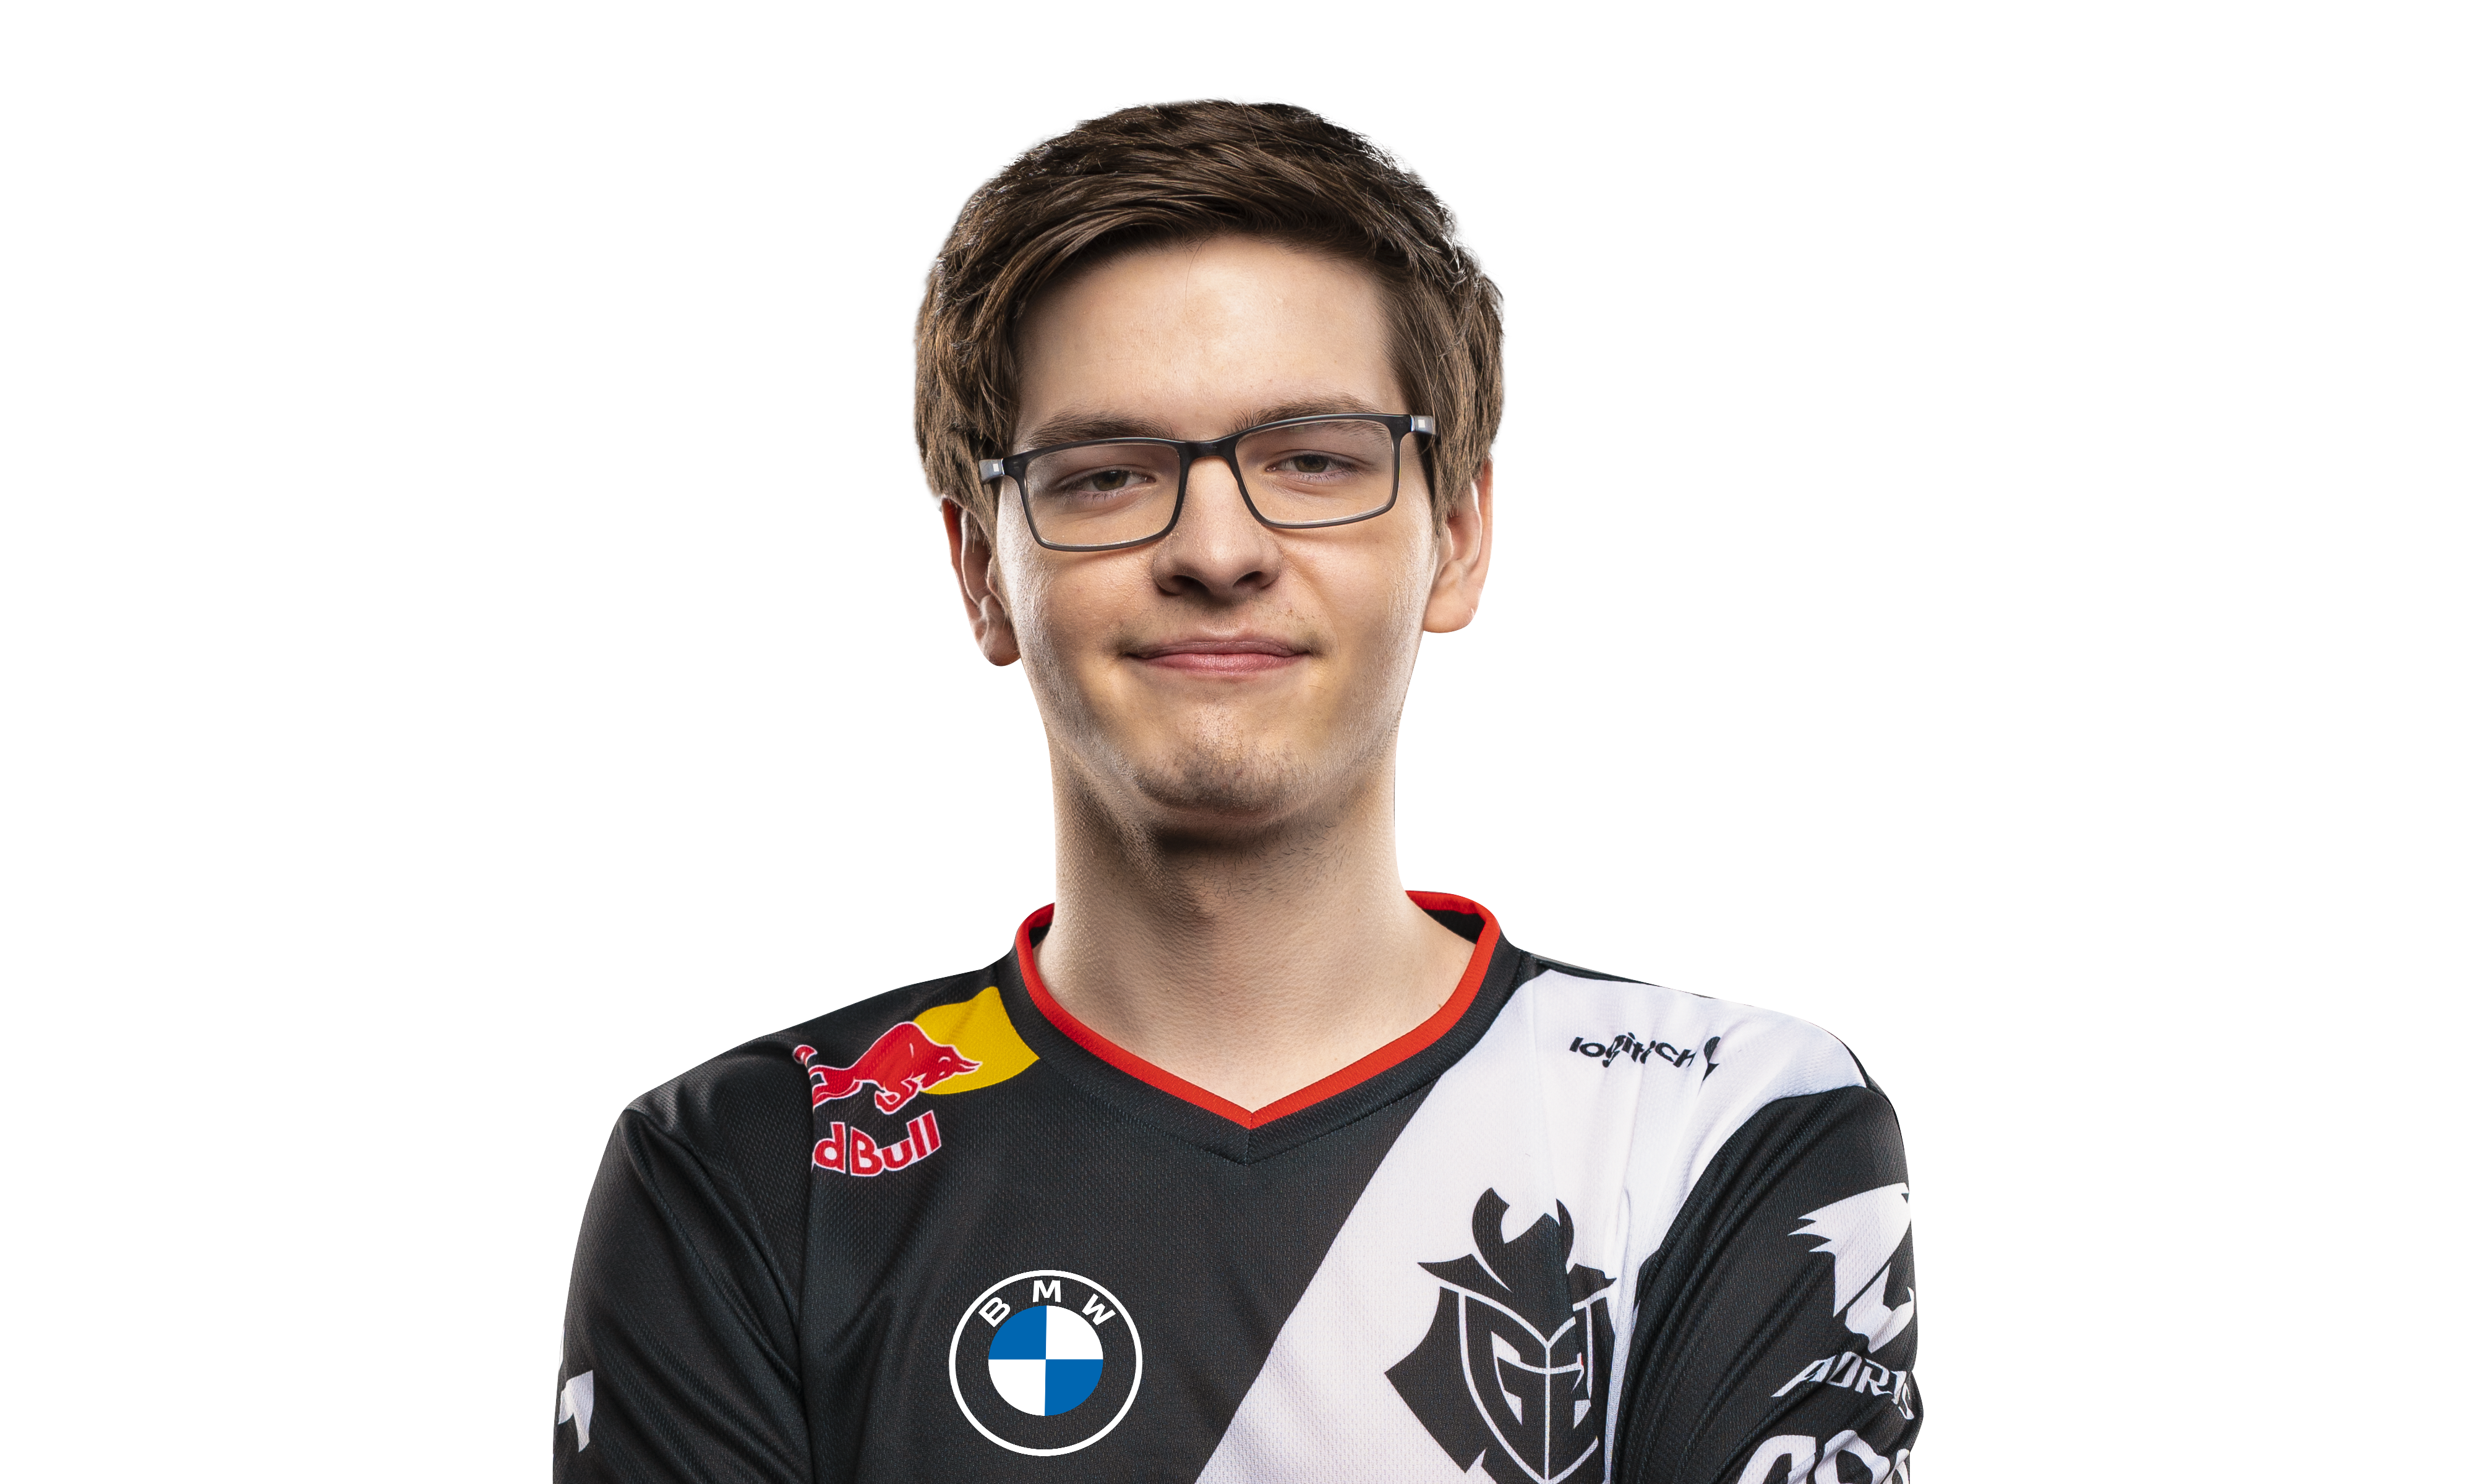 A headshot of G2 Esports League of Legends player Mikyx